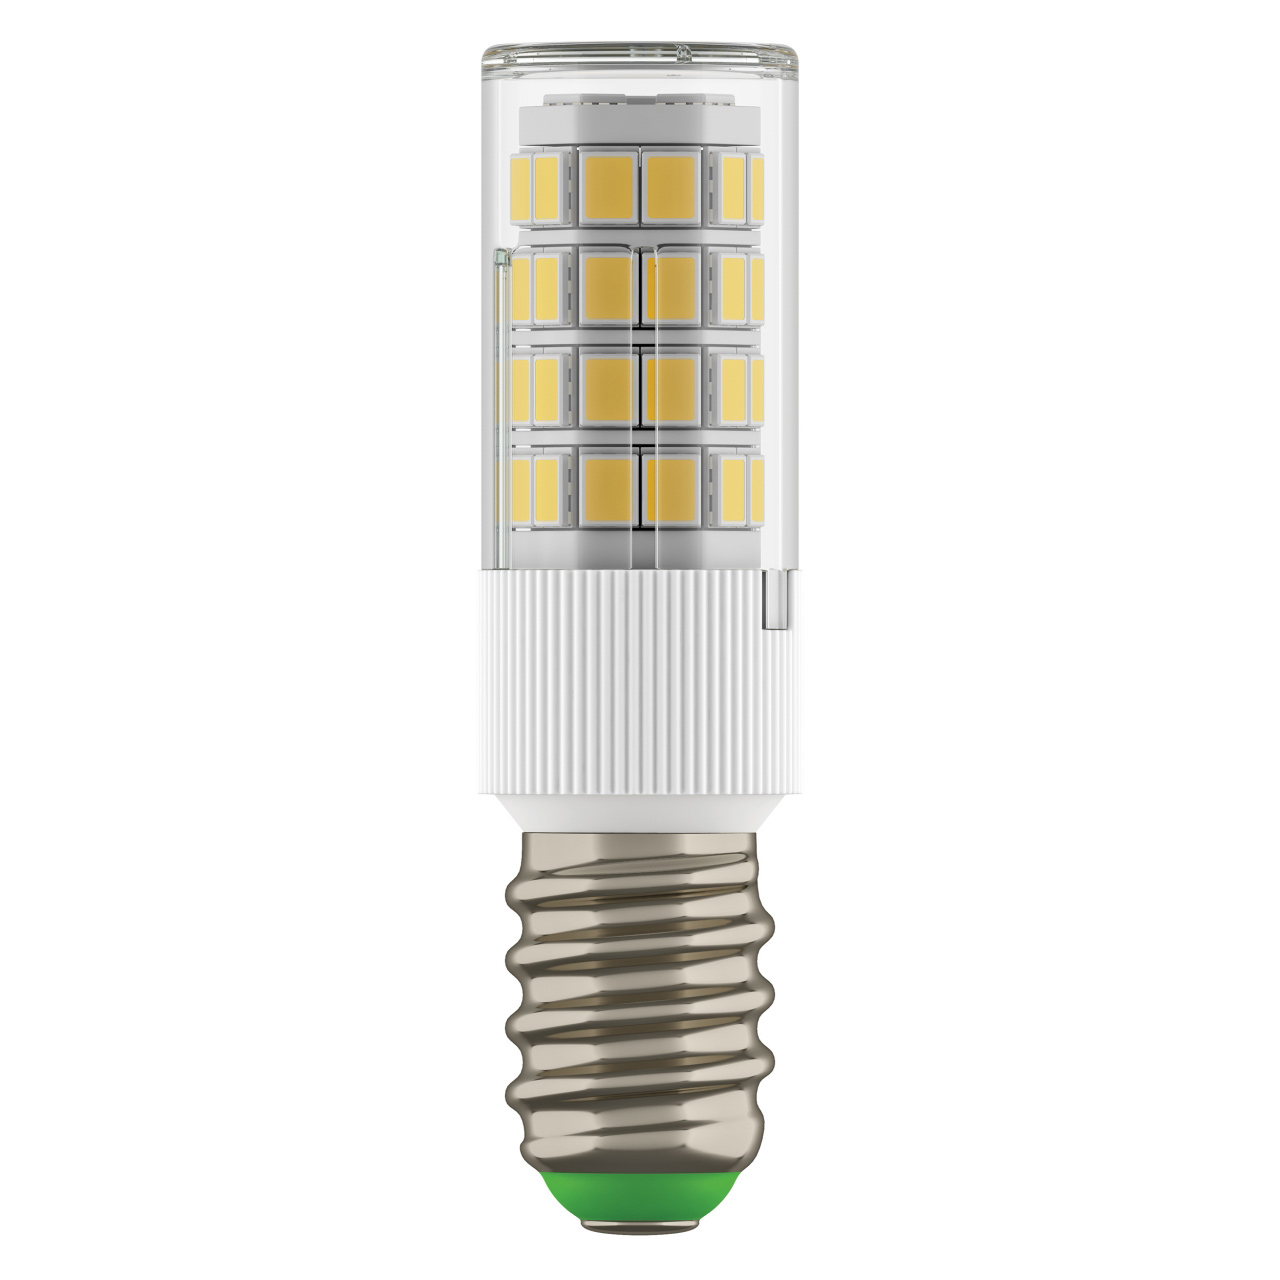 Лампа LED 220V E14 6W=60W 492LM 360G CL 3000K Lightstar 940352